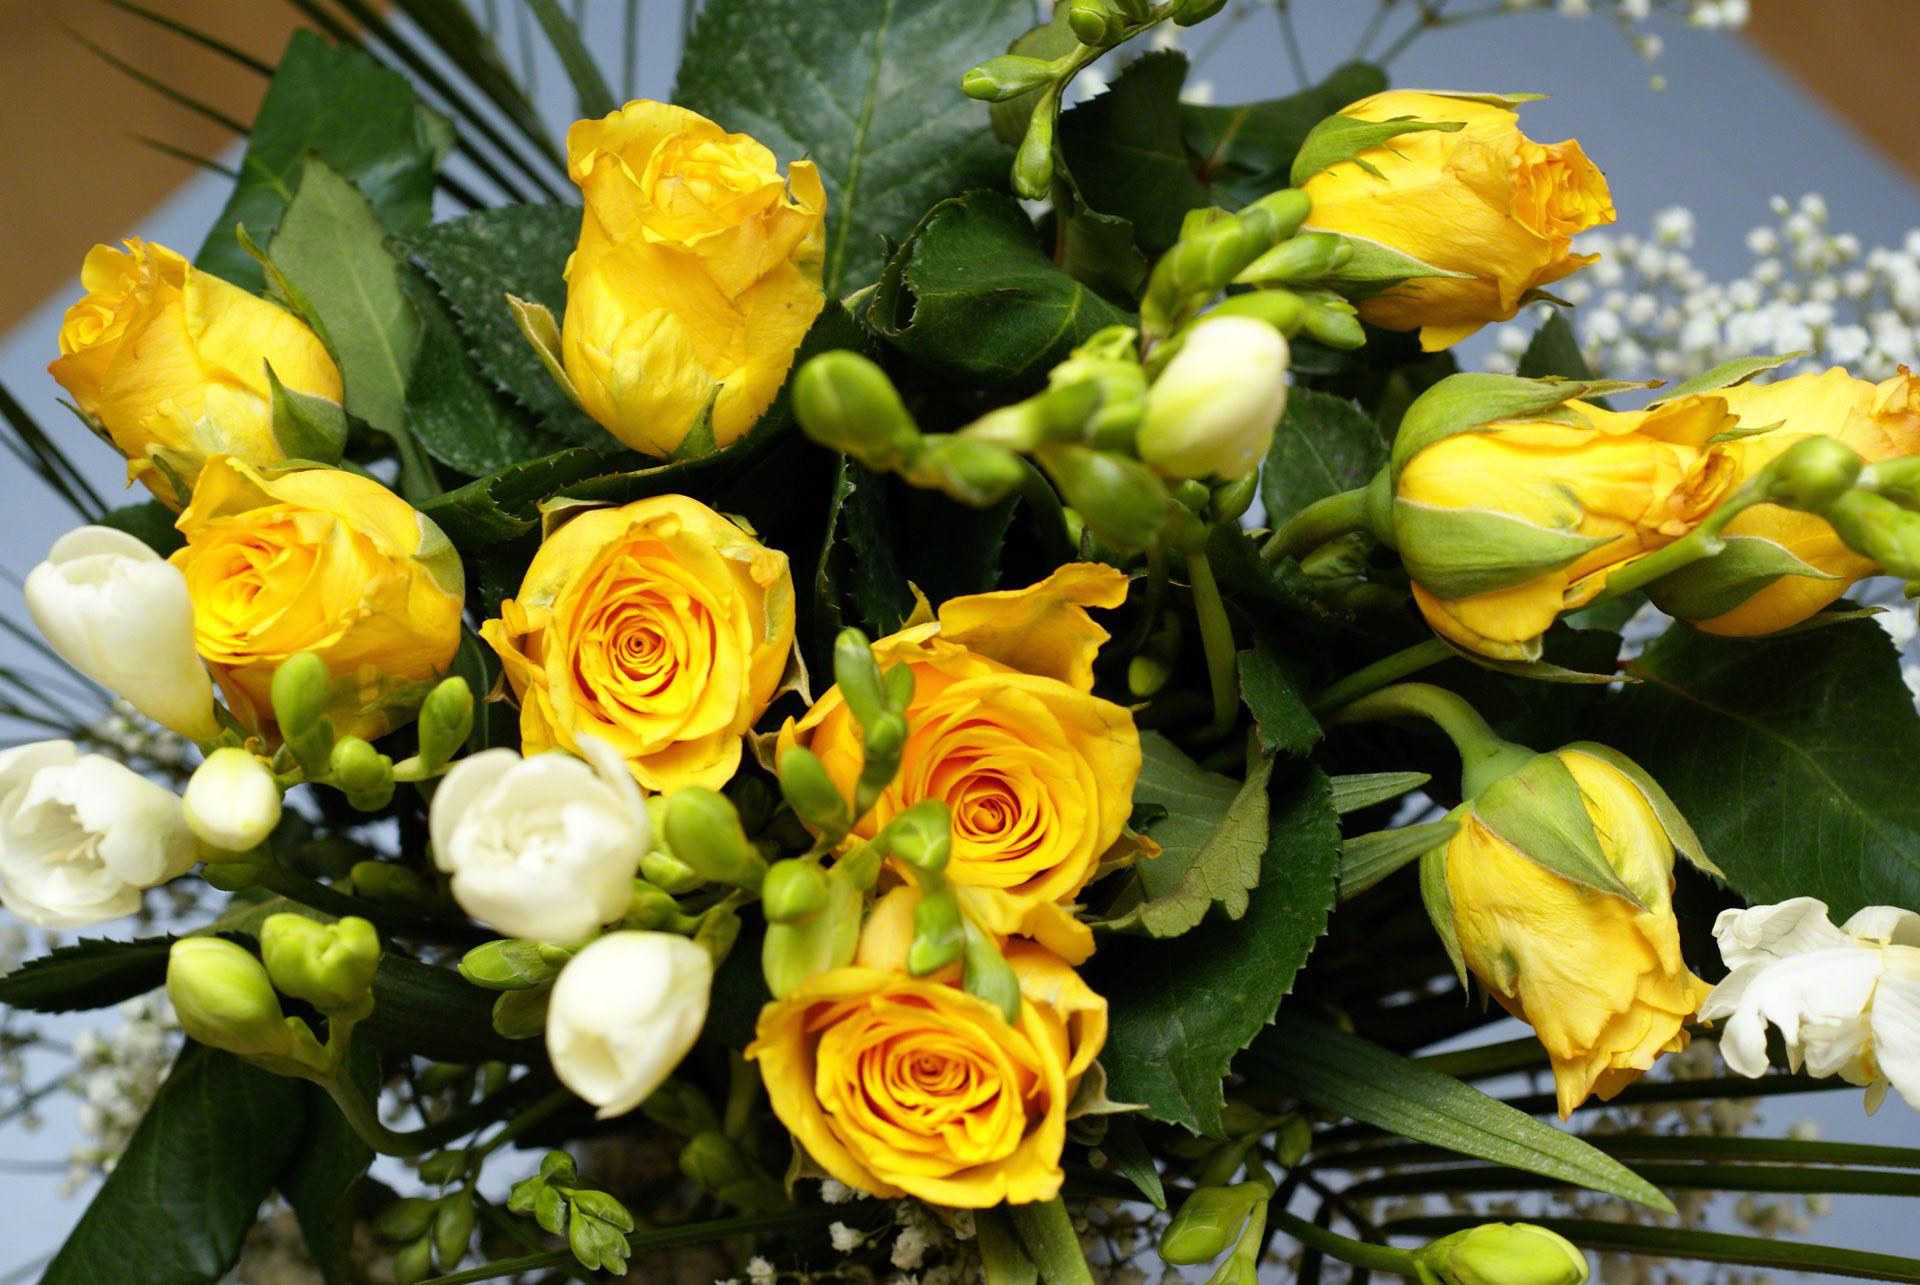 http://www.fabiovisentin.com/photography/photo/12/yellow-roses-bouquet-00842.jpg